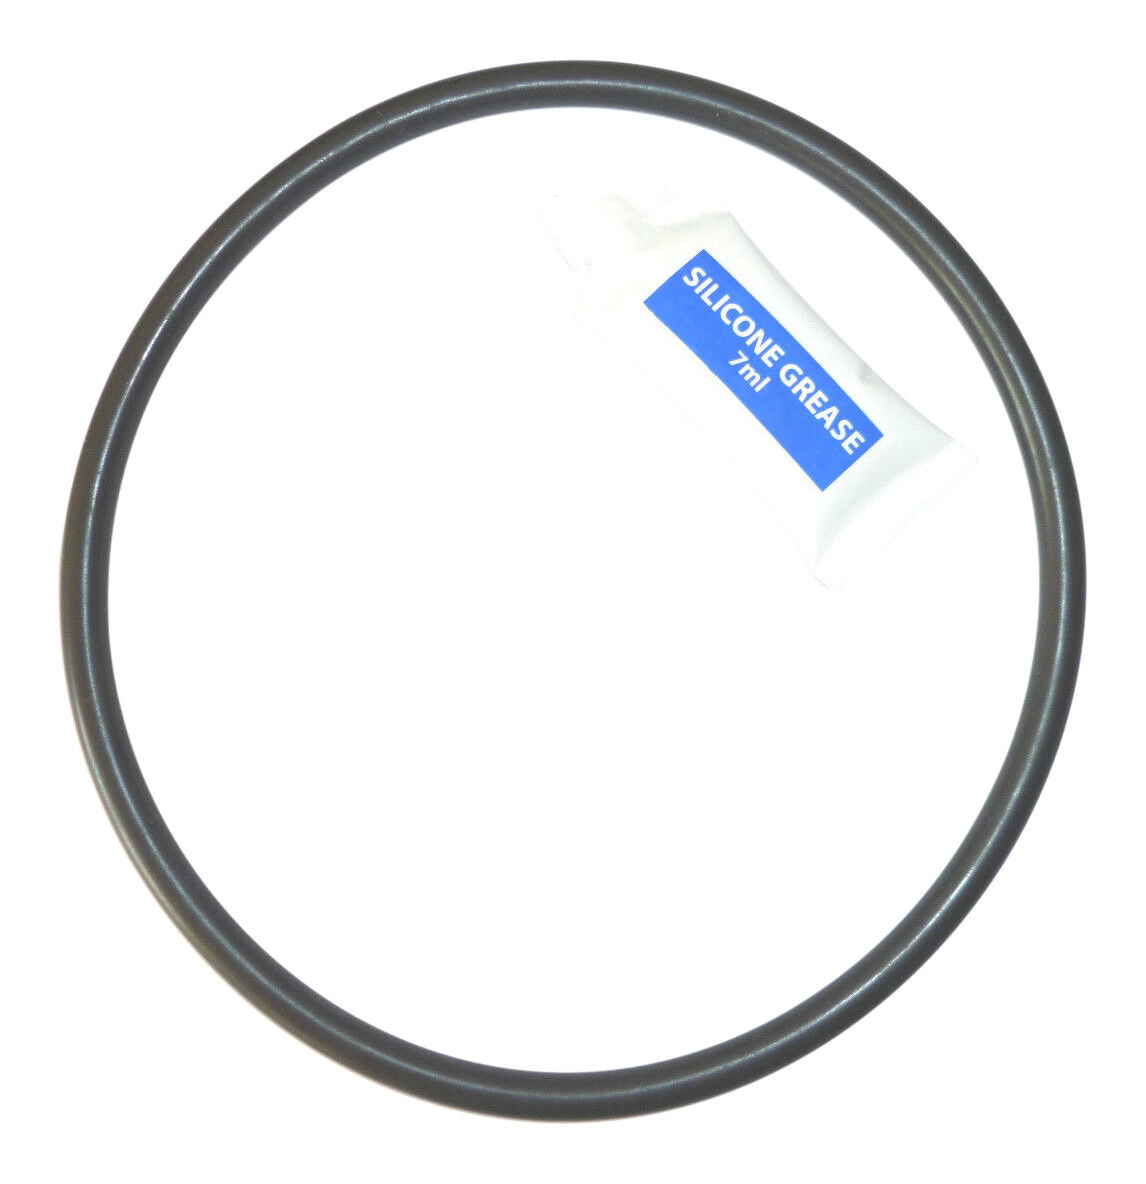 O-ring seal rubber gasket for Bestway Flowclear swimming pool sand tank filters